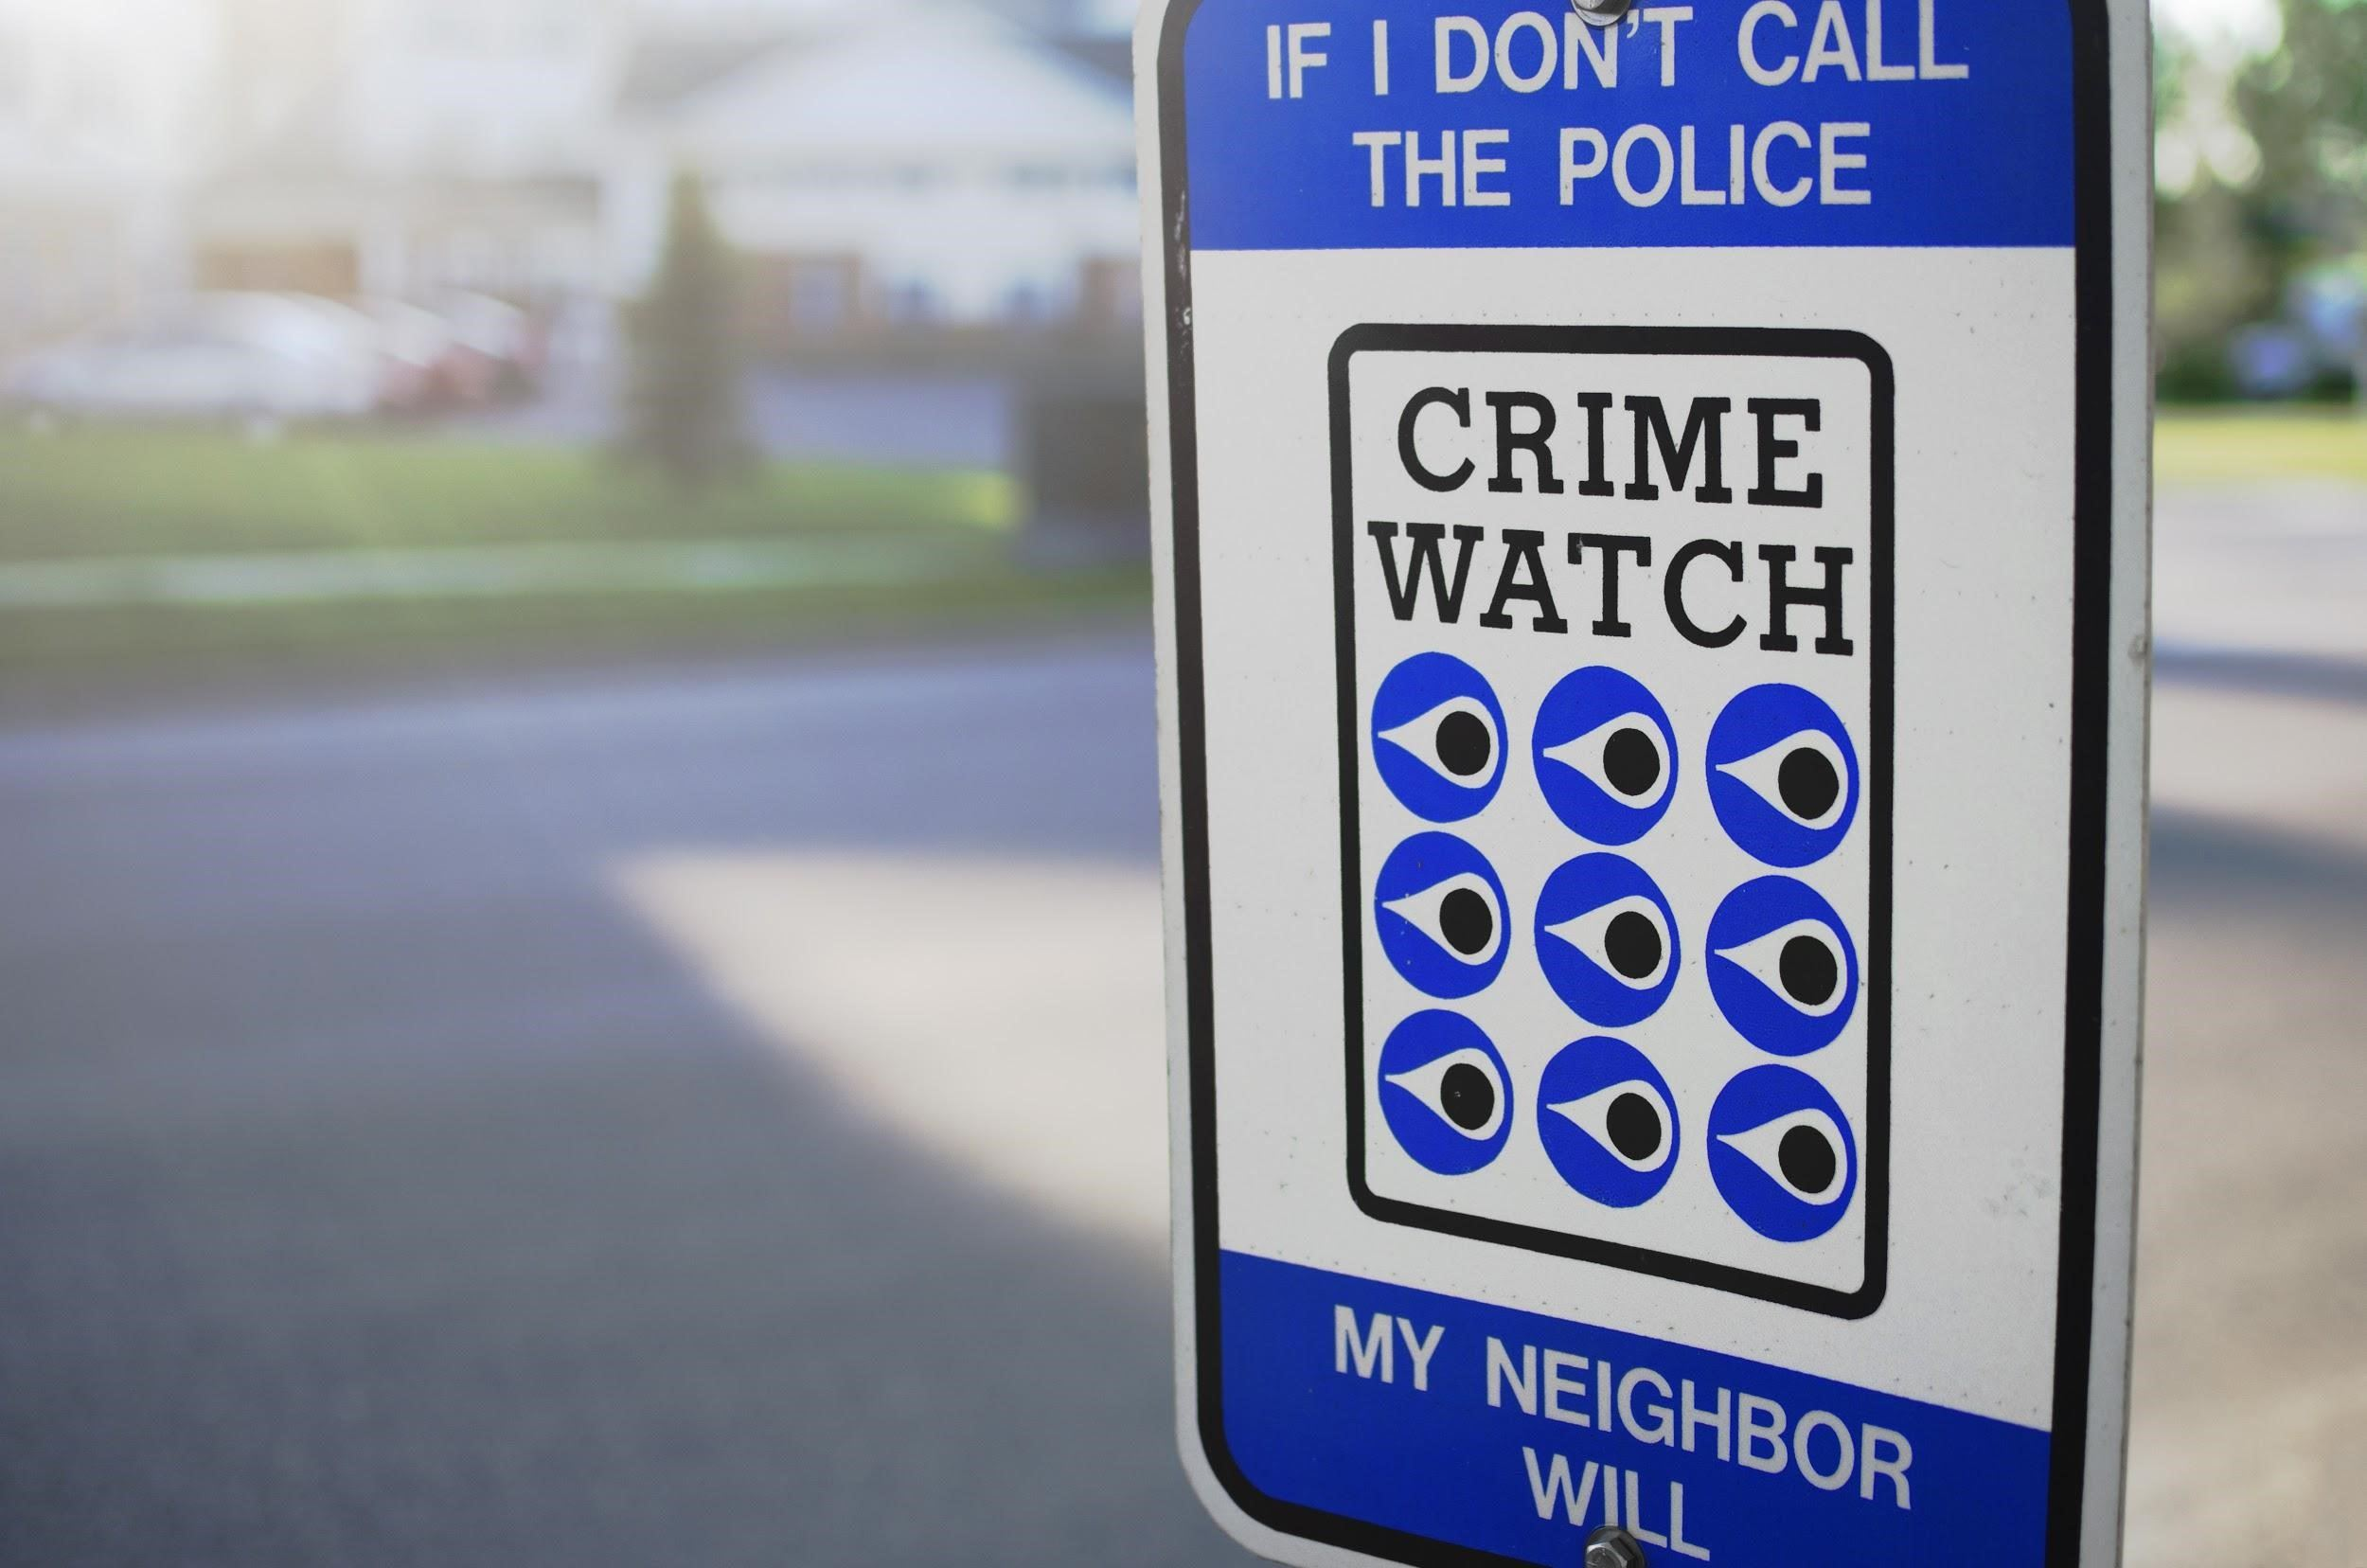 Posted Crime Watch Sign